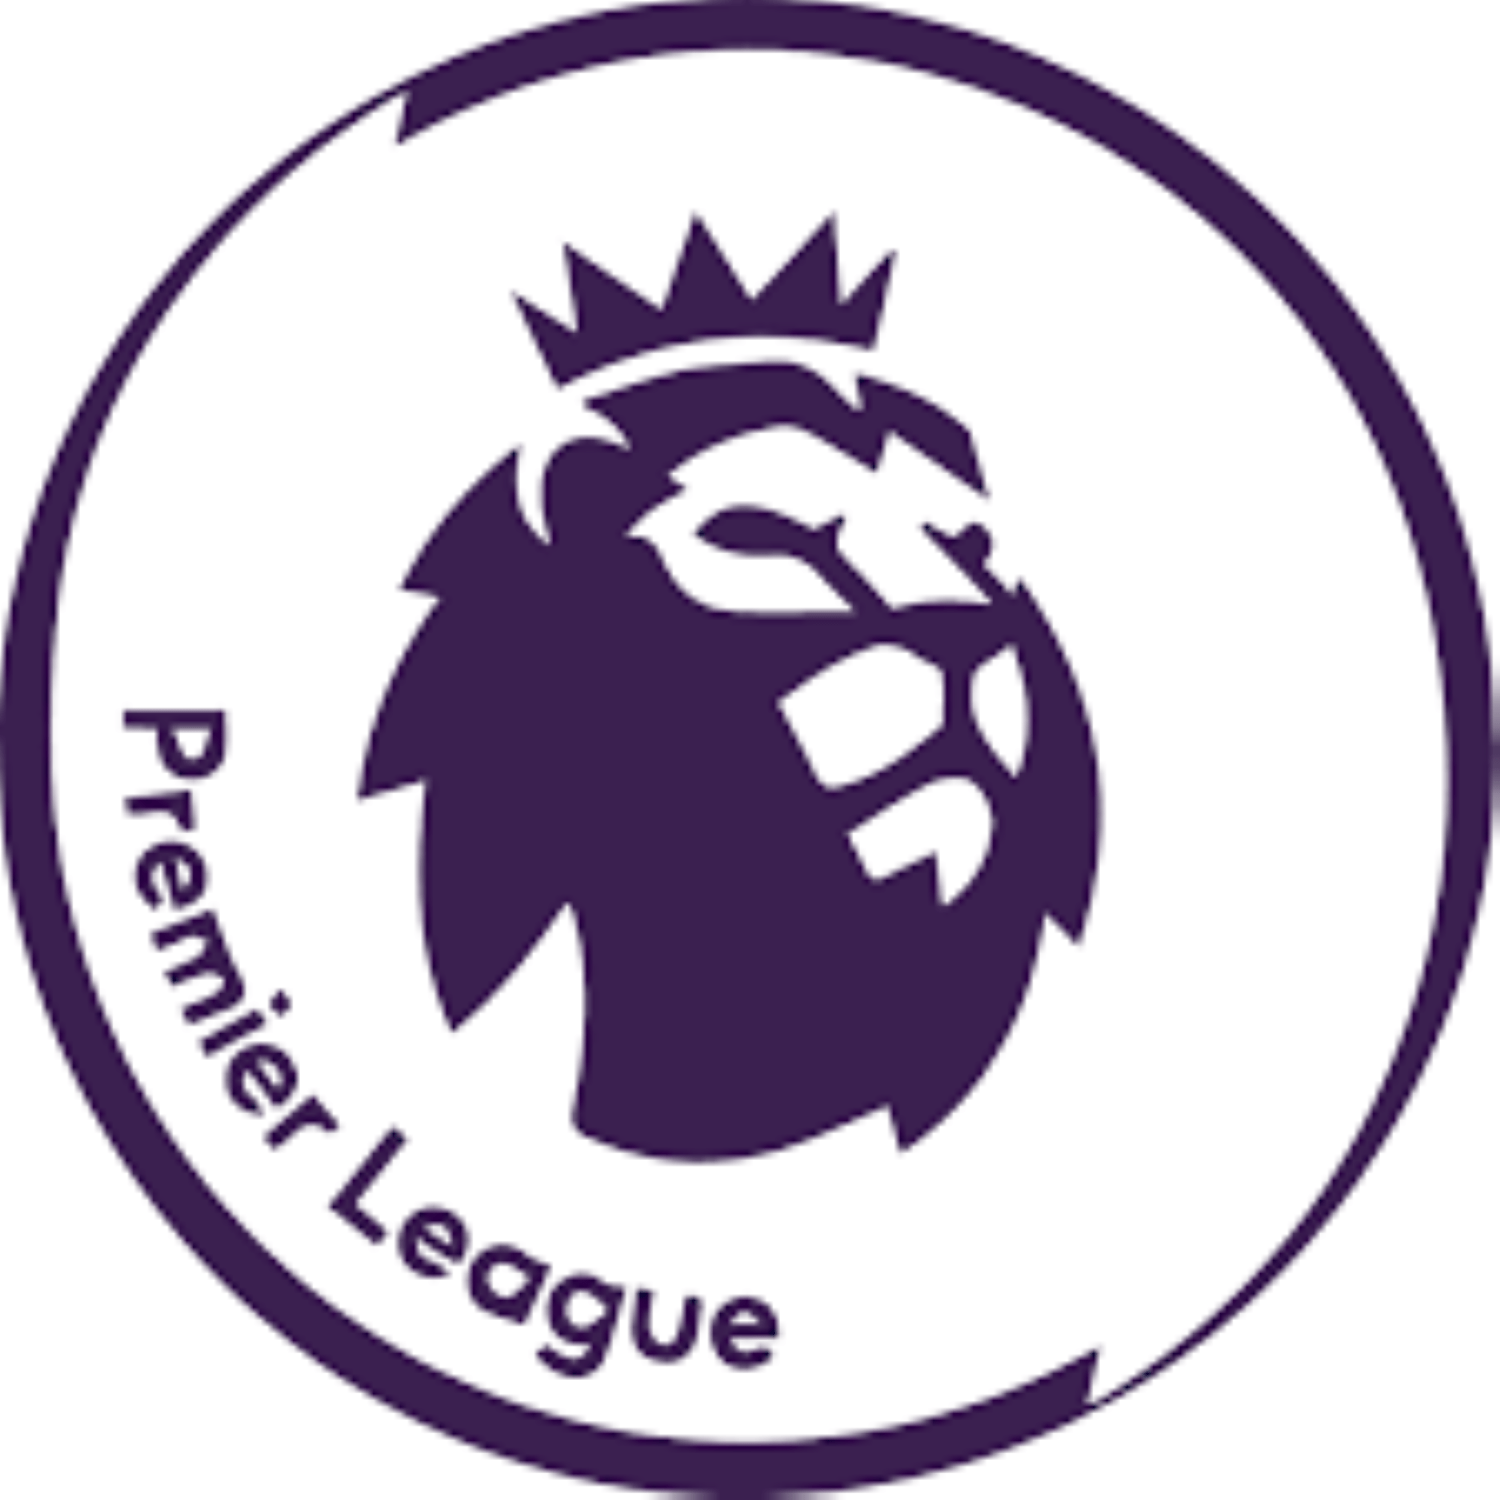 Fans could return for Premier League 20-21 season